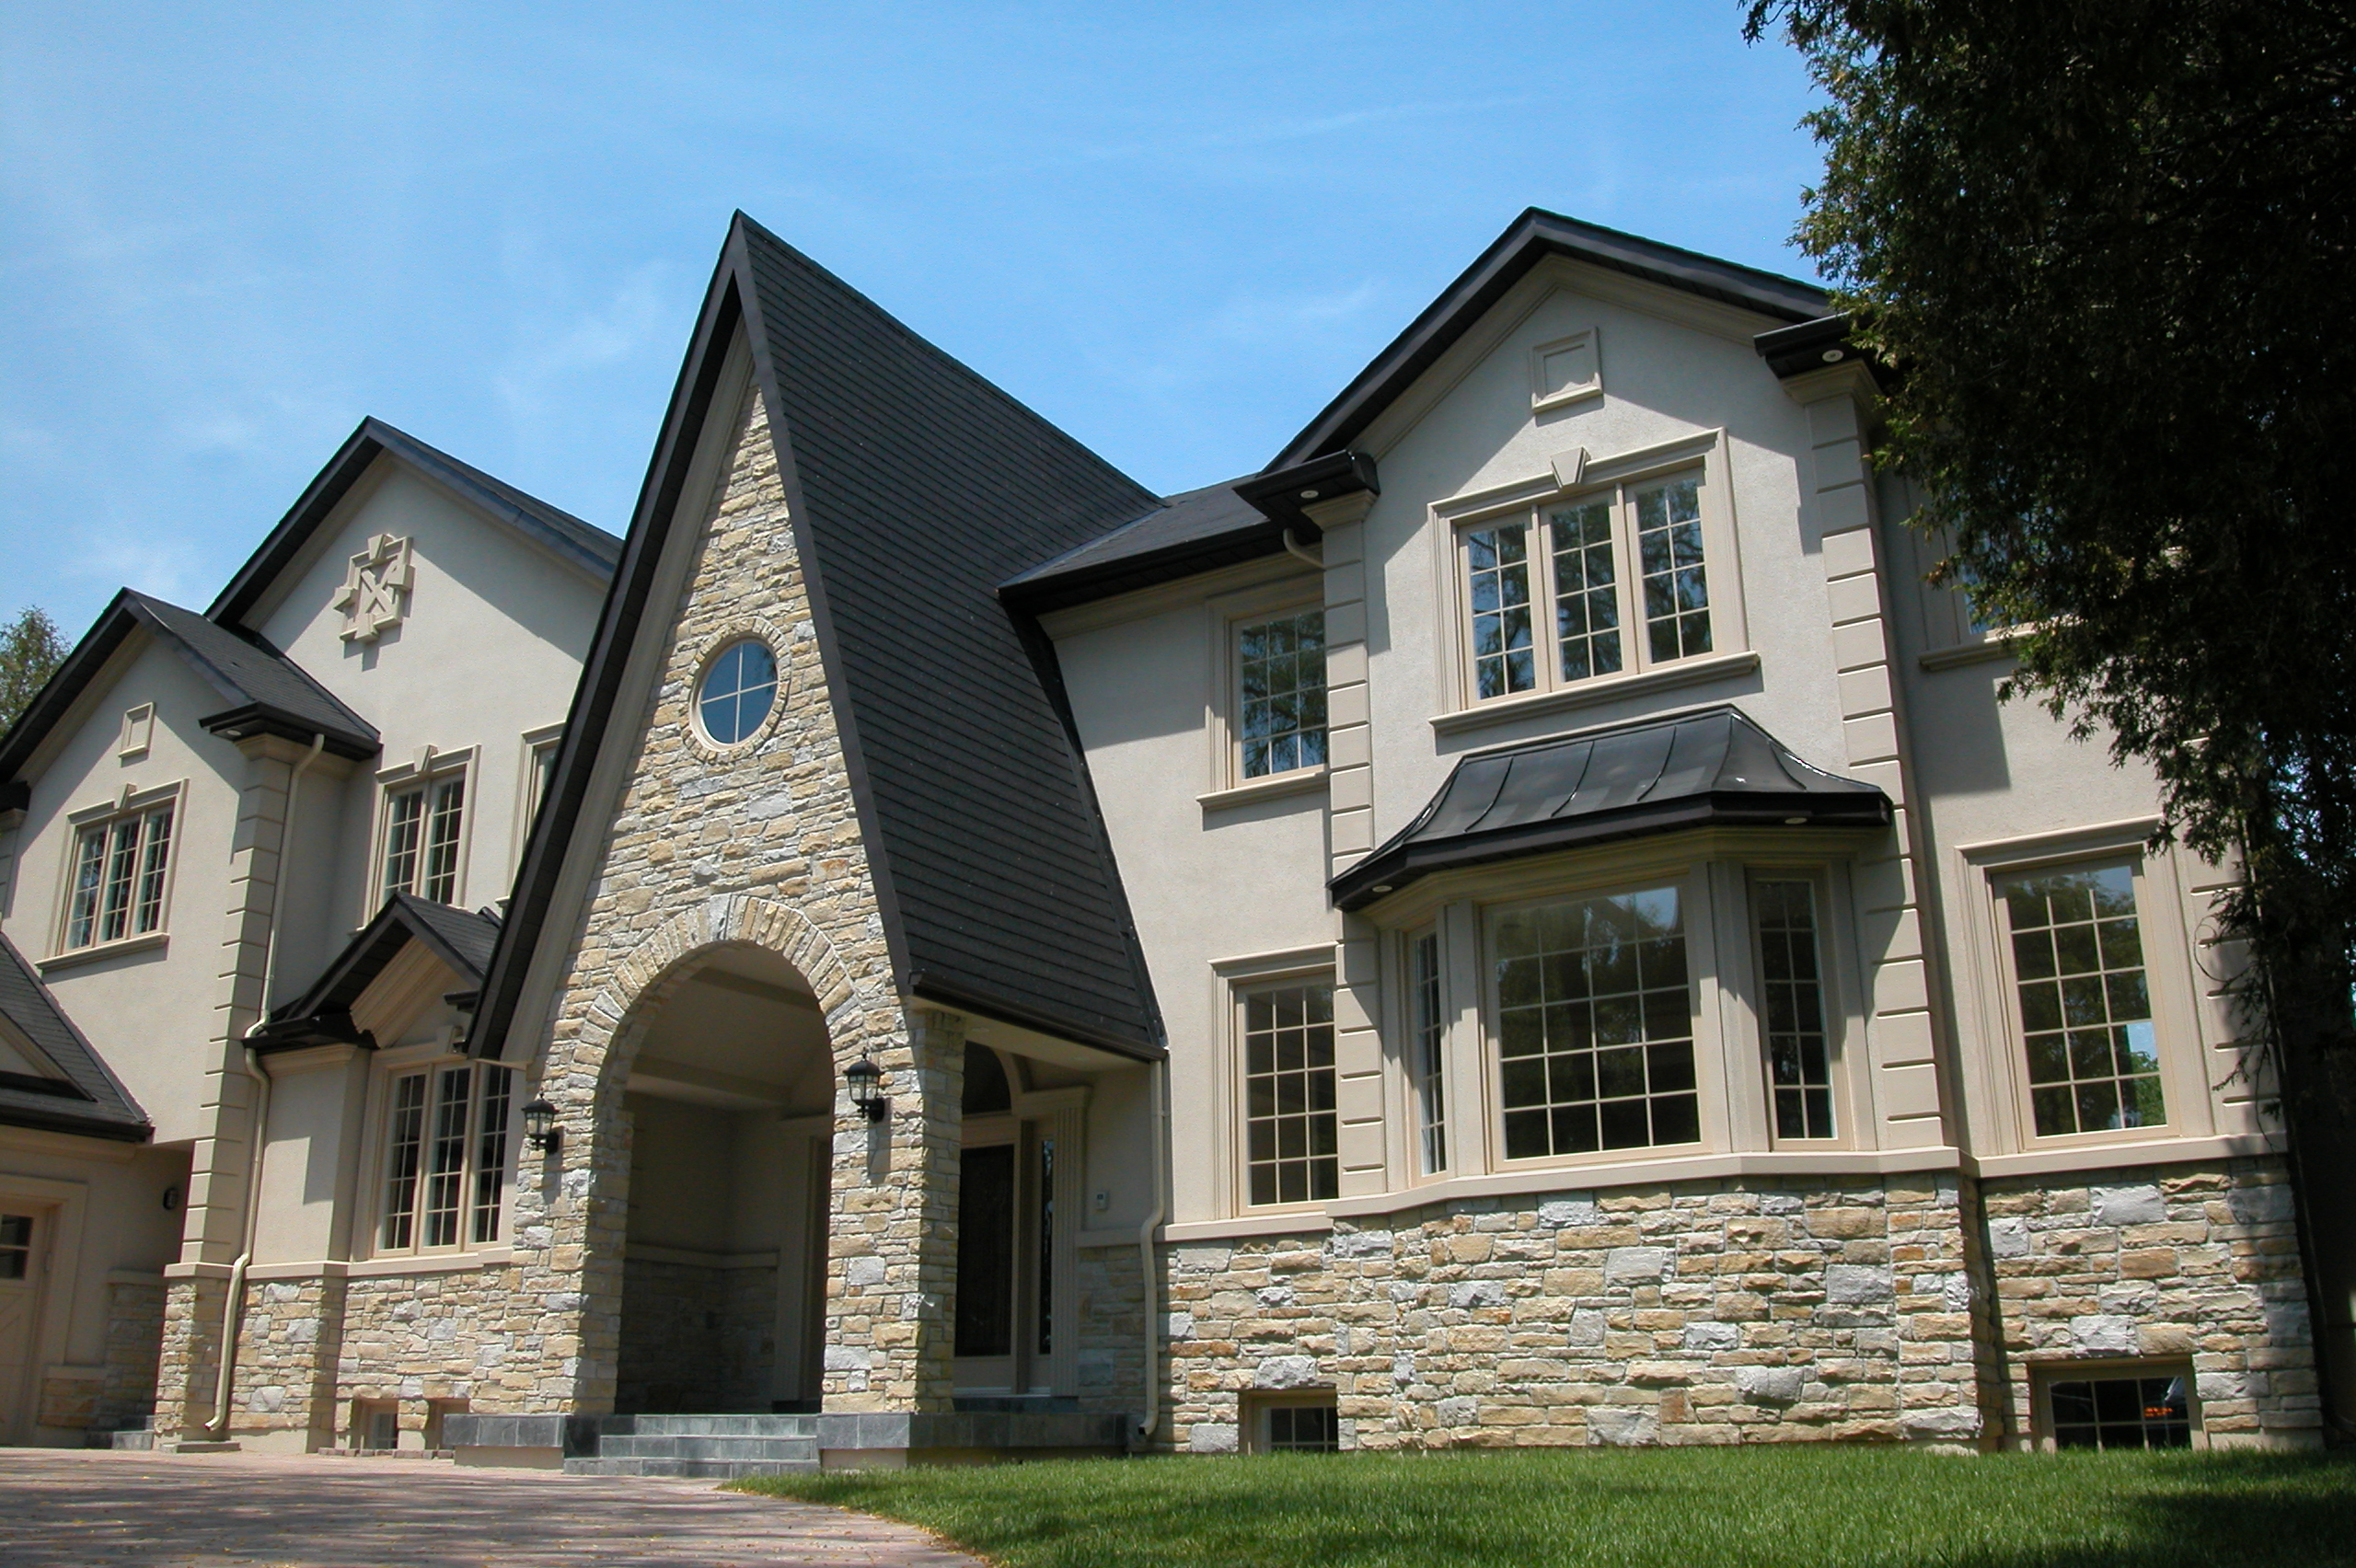 6 atlantis exterior on pinterest james hardie stone Houses with stone facade